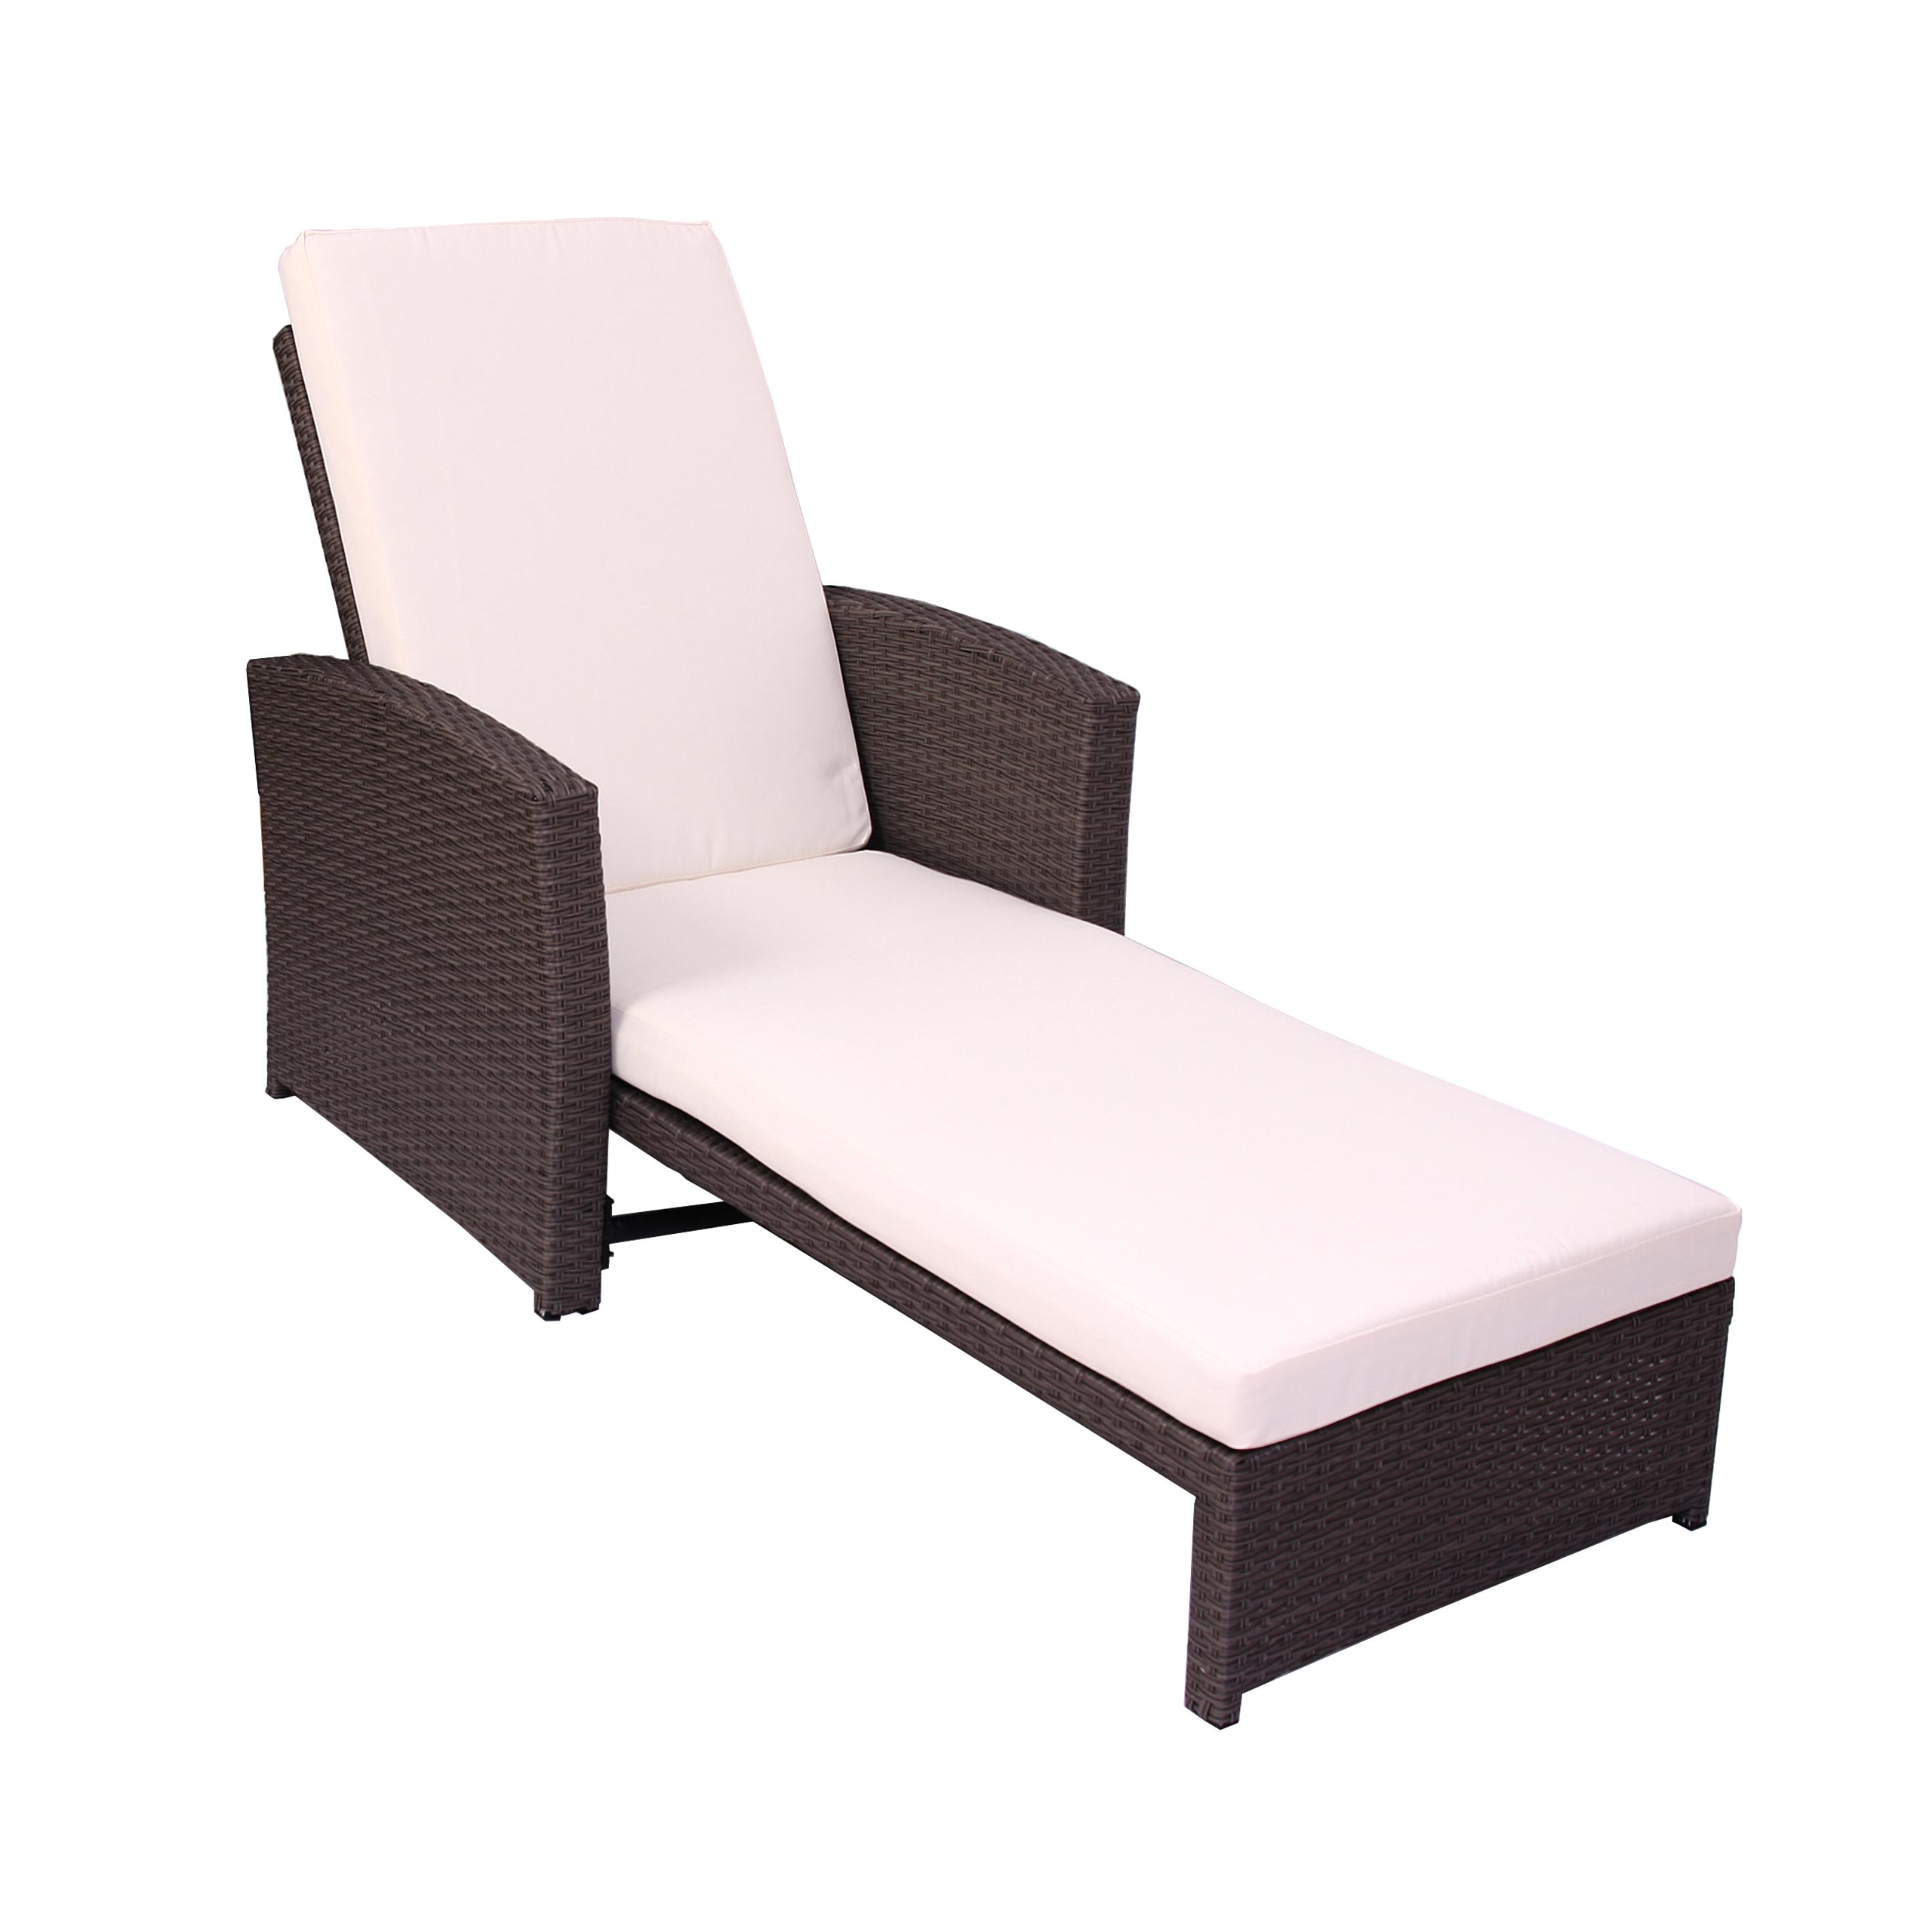 sonnenliege relaxliege gartenliege liege romvi poly rattan braun meliert ebay. Black Bedroom Furniture Sets. Home Design Ideas